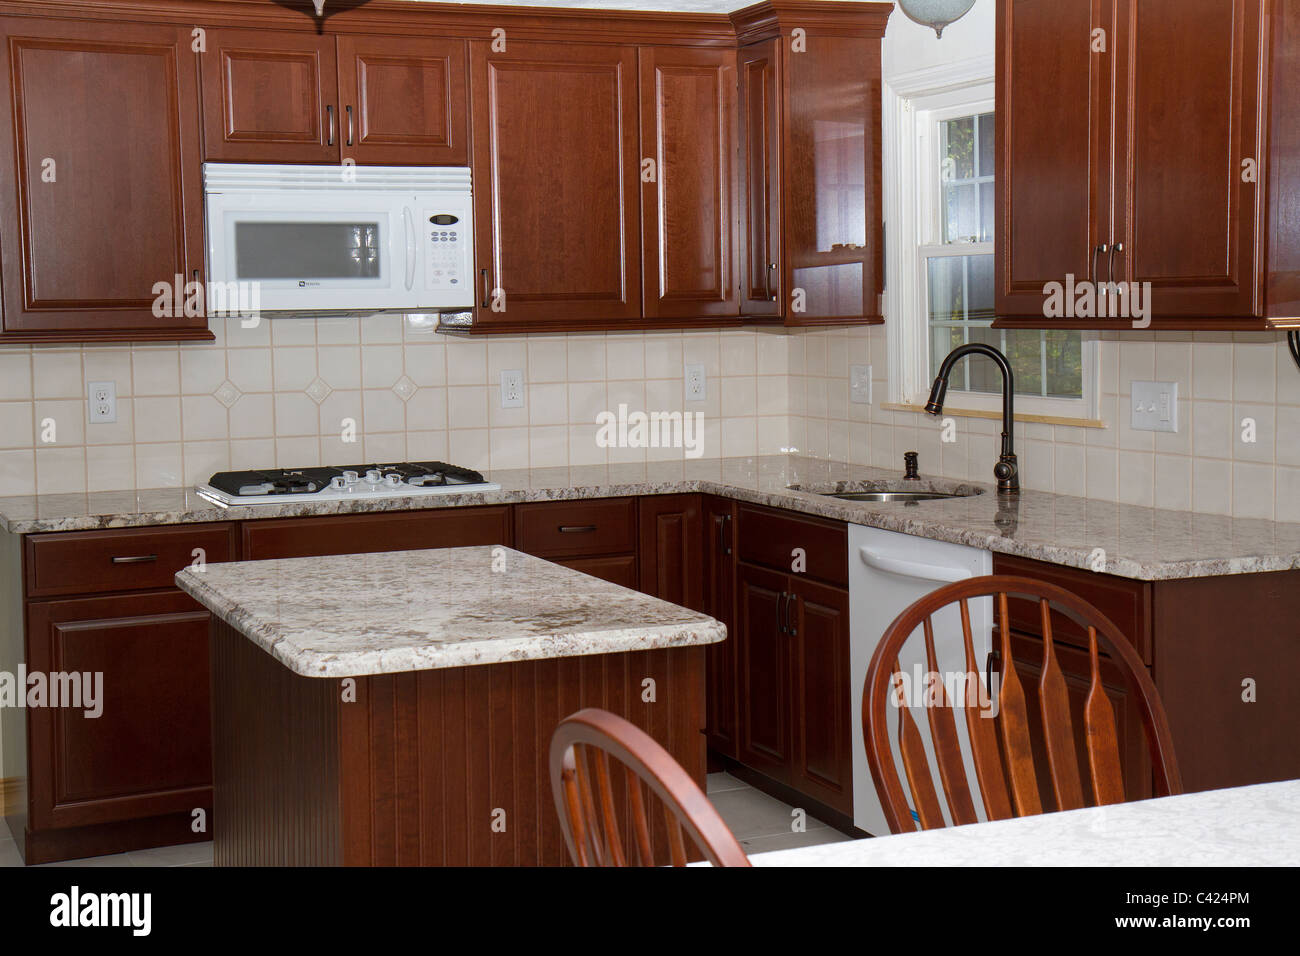 New cherry cabinets granite counter tops and ceramic tile floor new cherry cabinets granite counter tops and ceramic tile floor highlight kitchen remodeling job dailygadgetfo Gallery